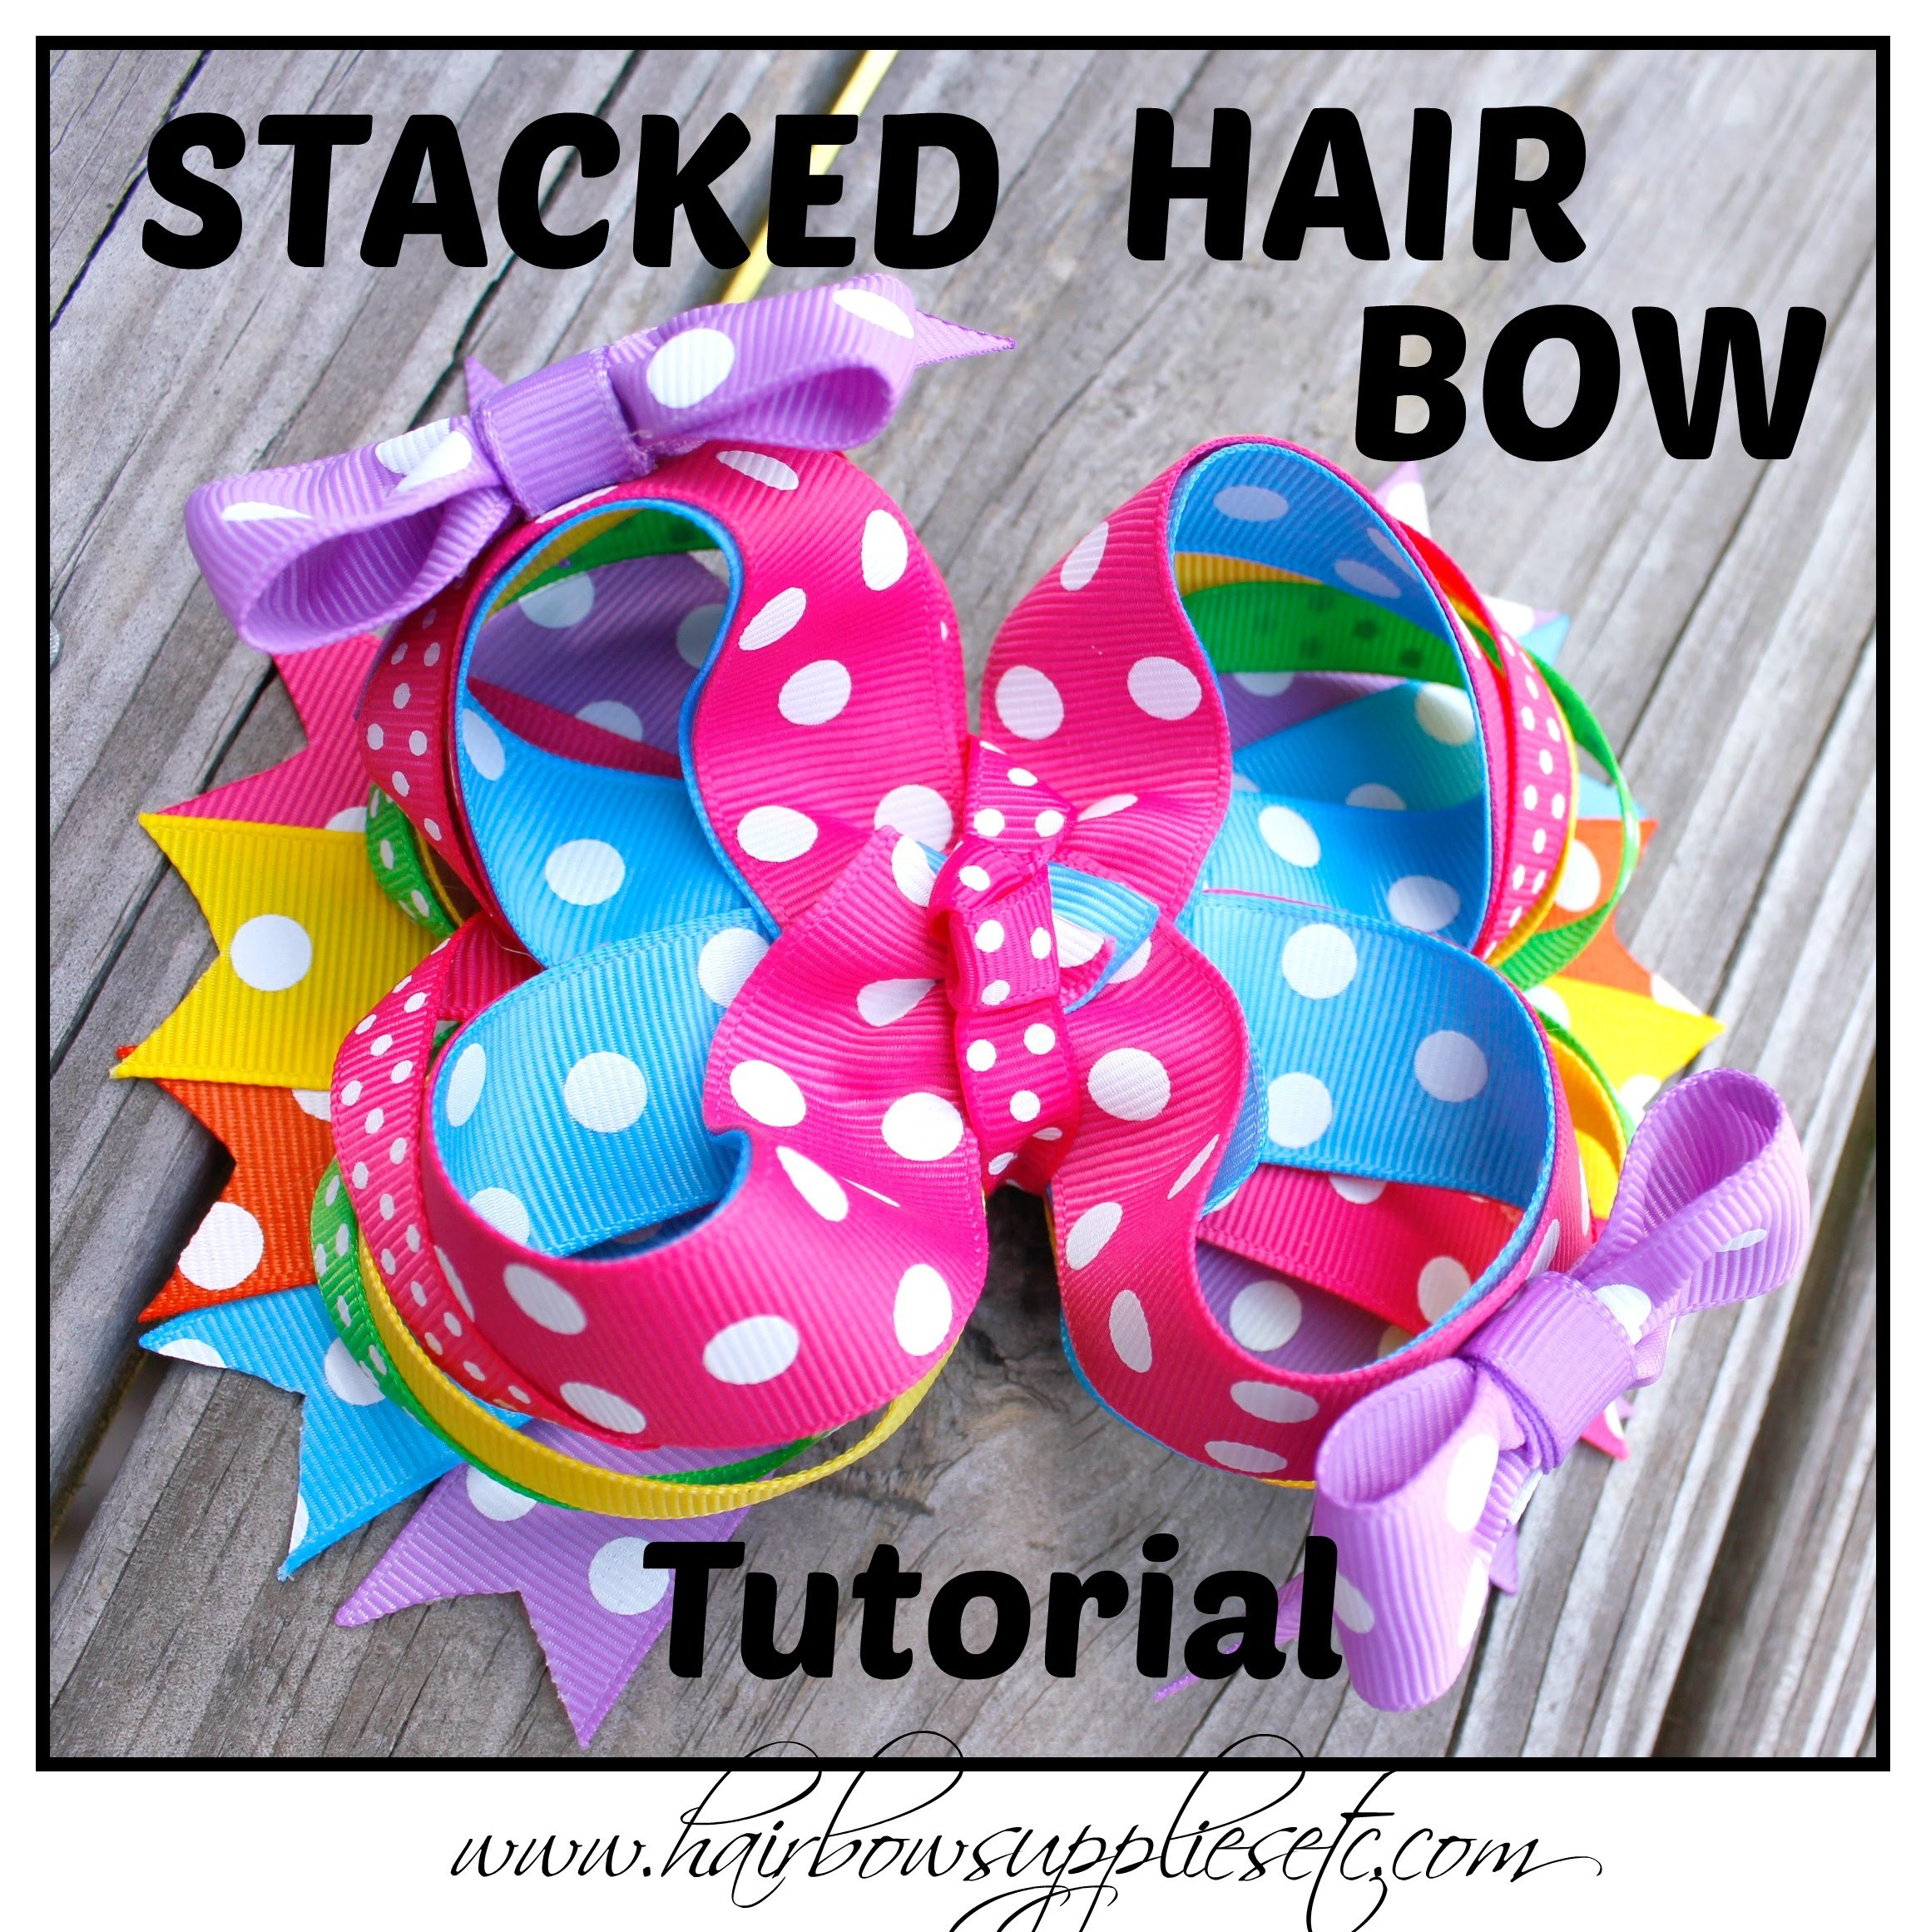 How to Make a Stacked Boutique Hair Bow - Hairbow Supplies, Etc.